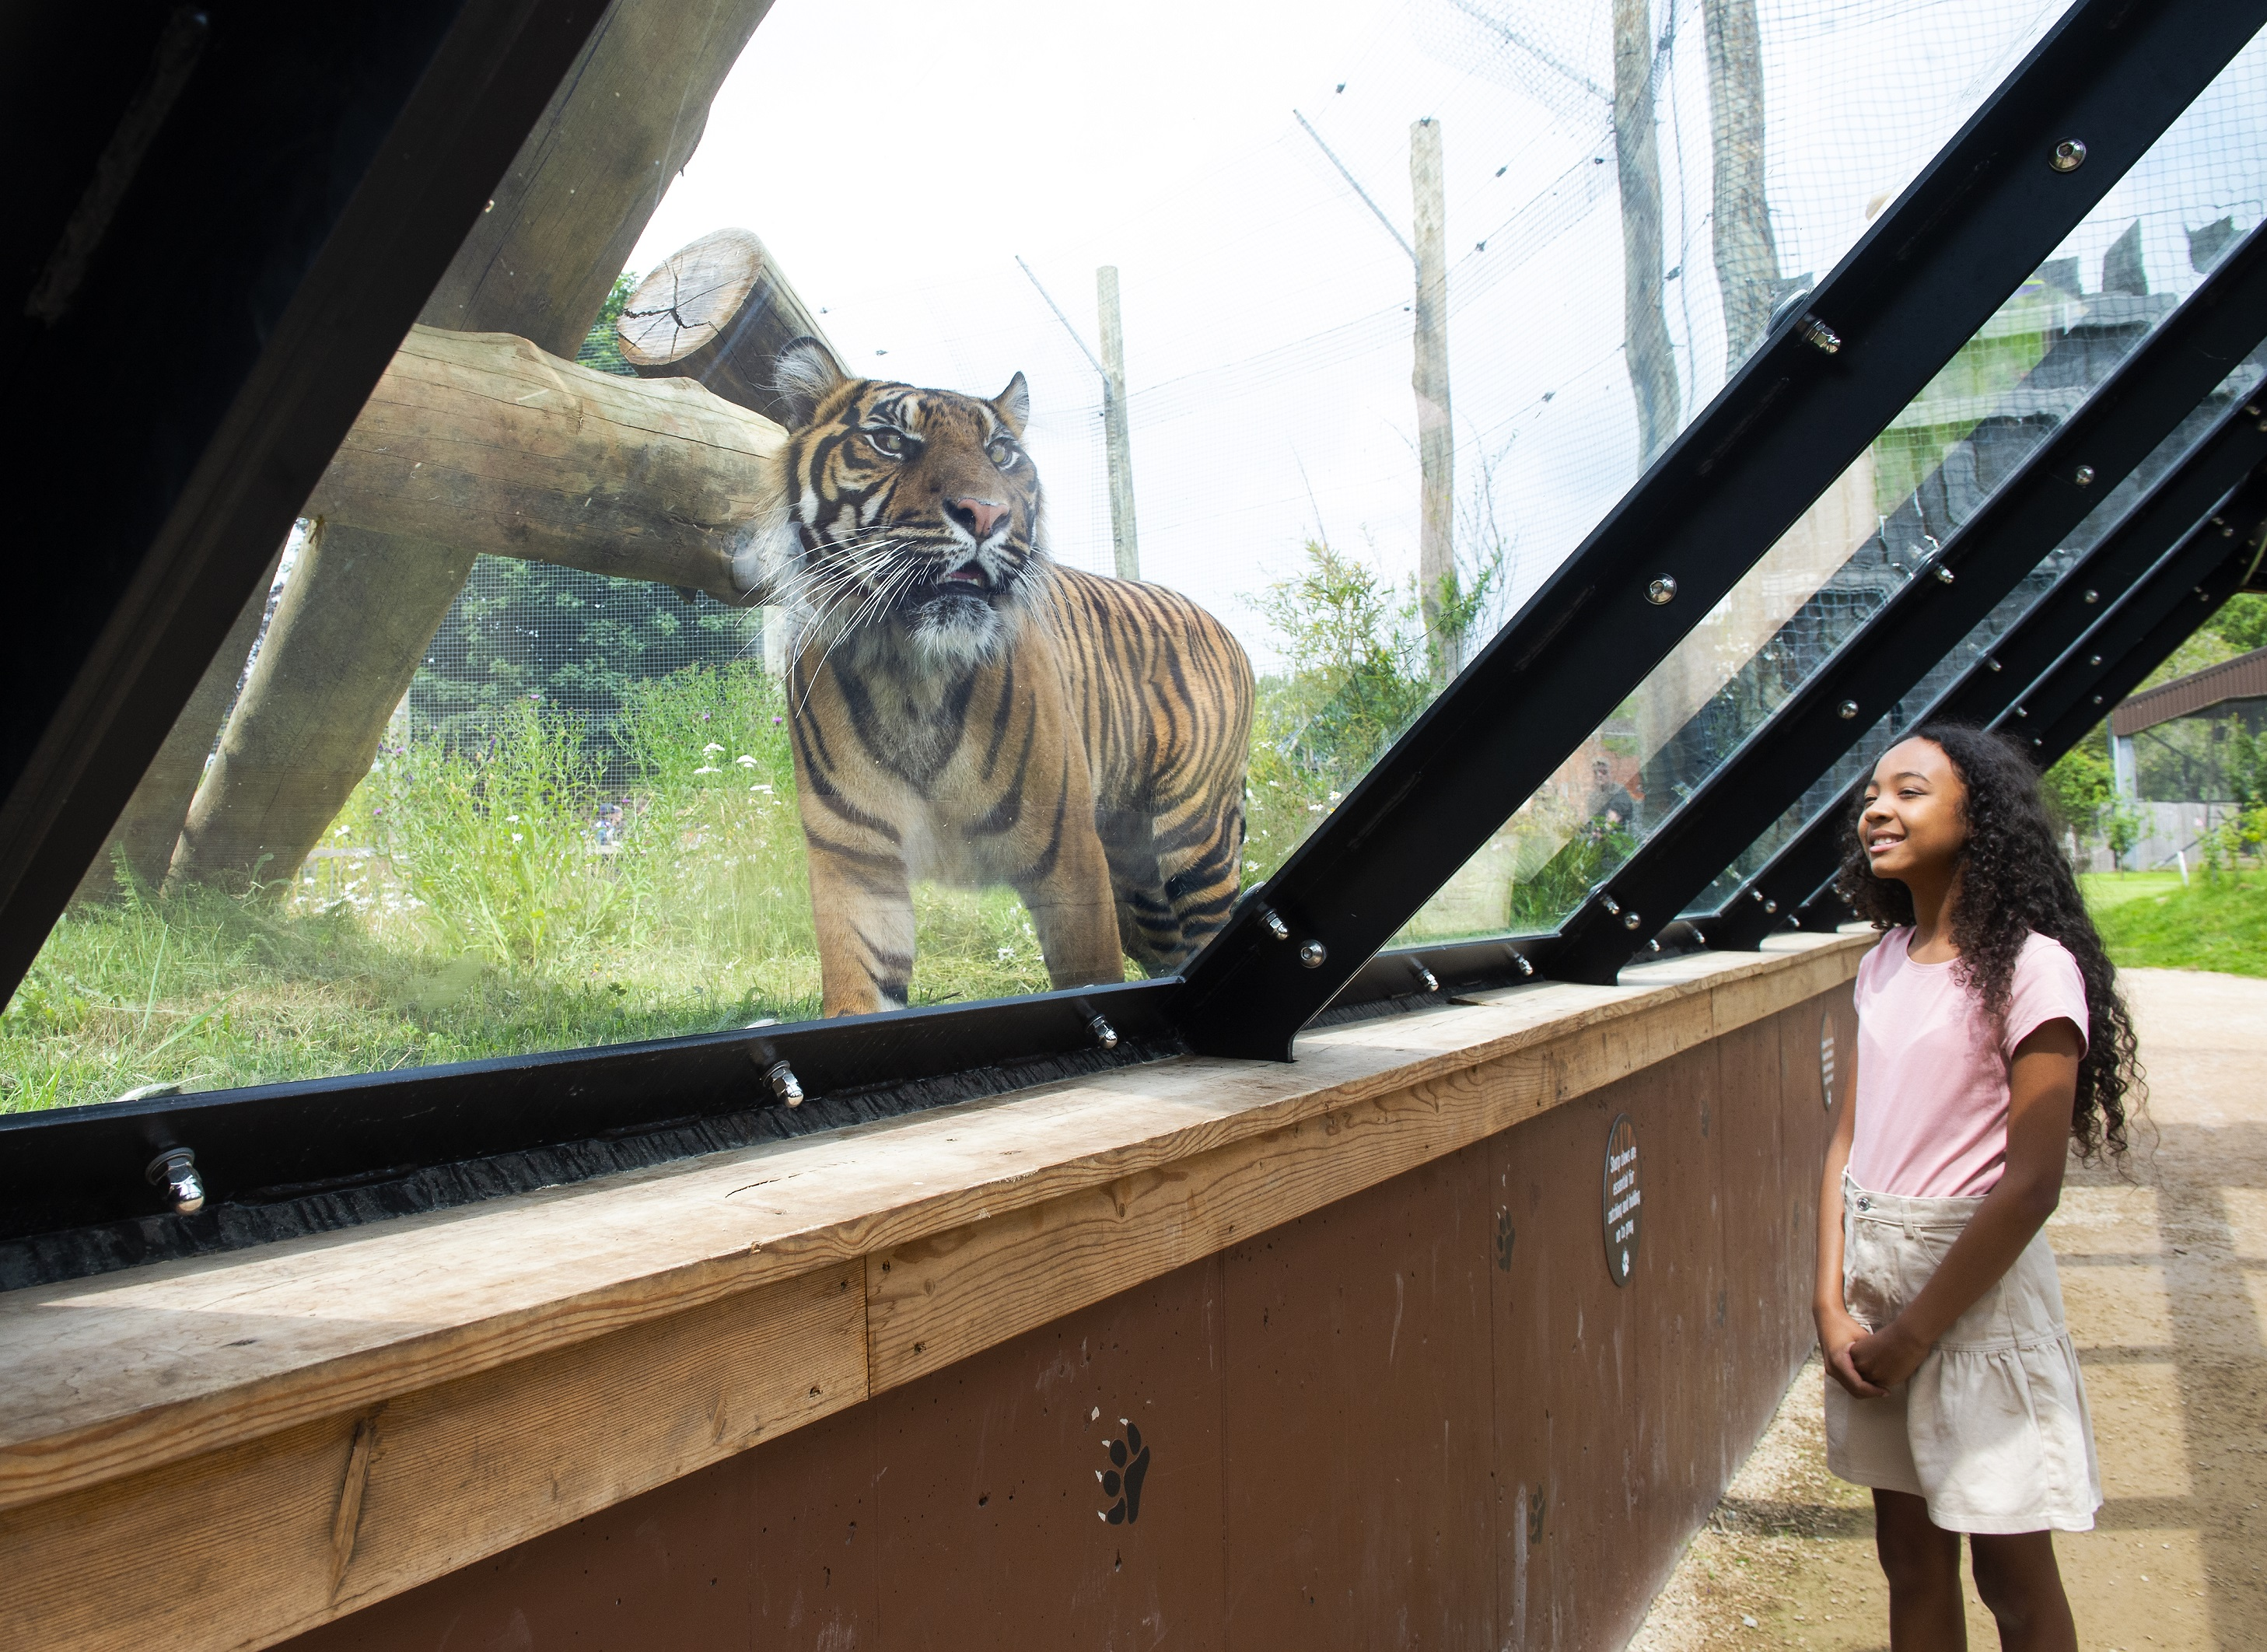 WORLD-RENOWNED TWYCROSS ZOO LAUNCHES SEARCH FOR YOUNG CONSERVATIONISTS IN NOTTINGHAM